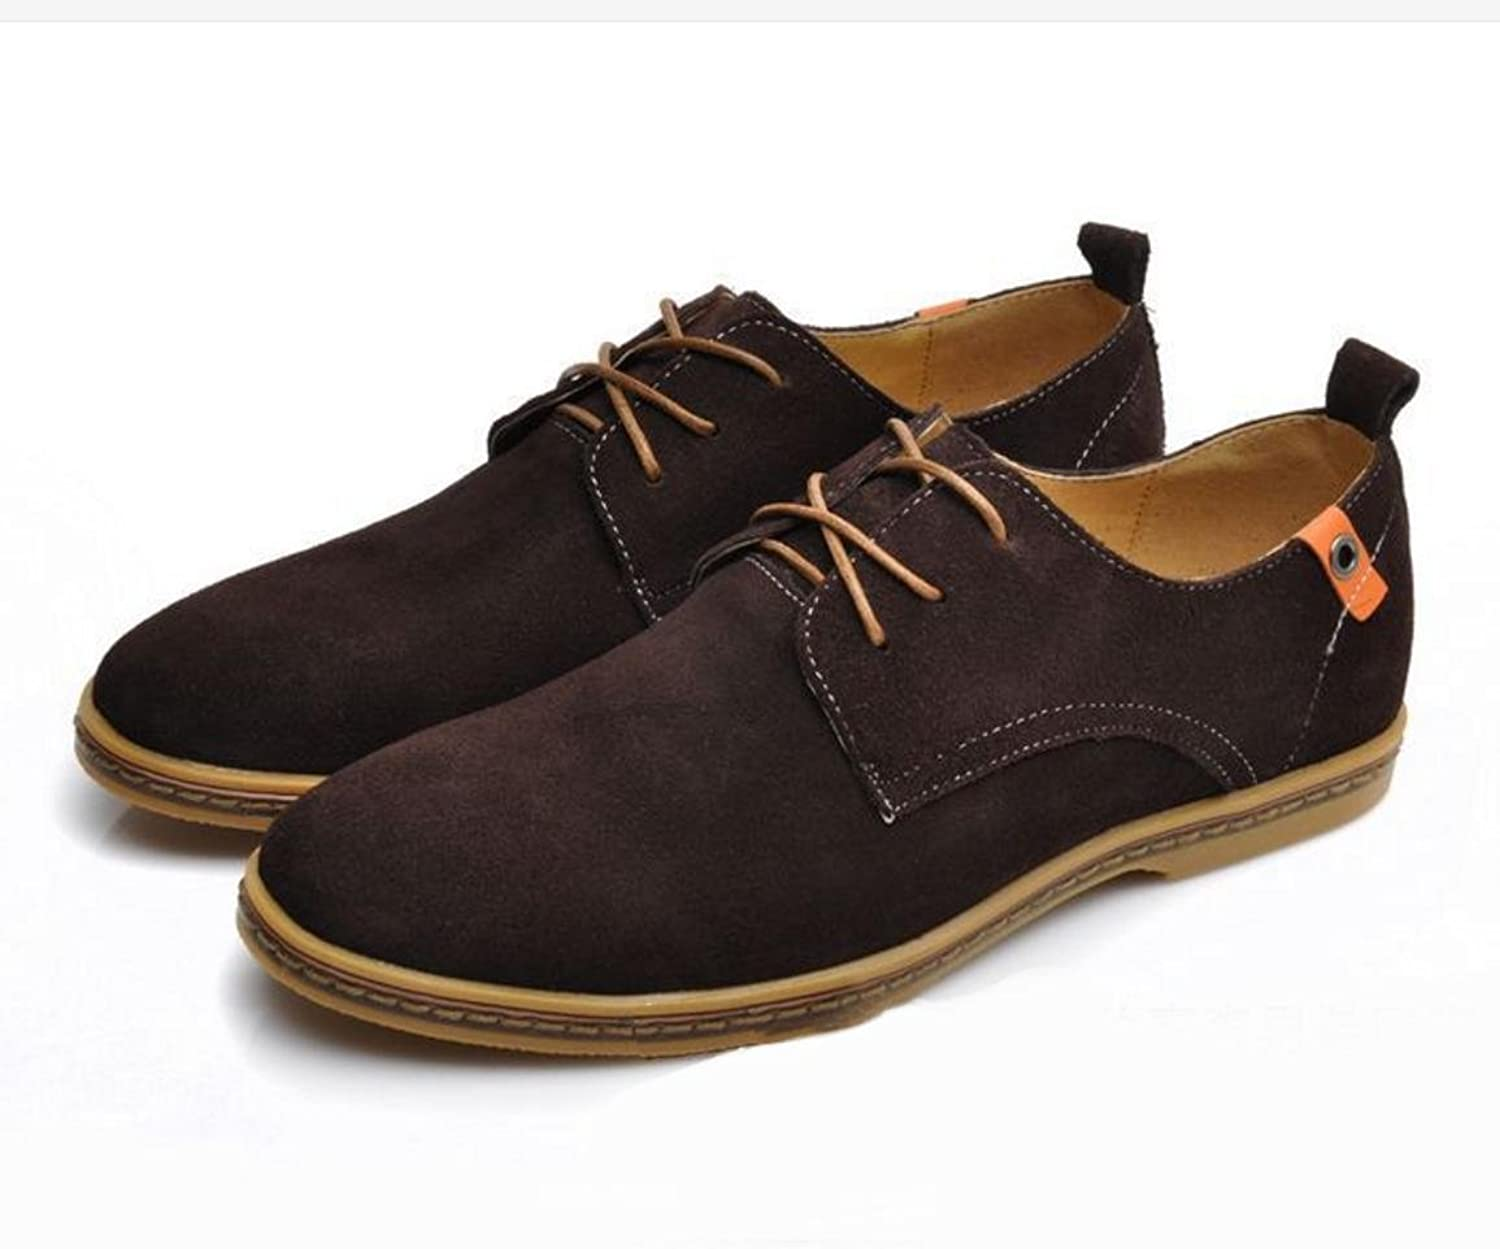 WZG New fall men 's fashion suede leather men' s shoes casual shoes flat shoes 9.5 , camel , 44